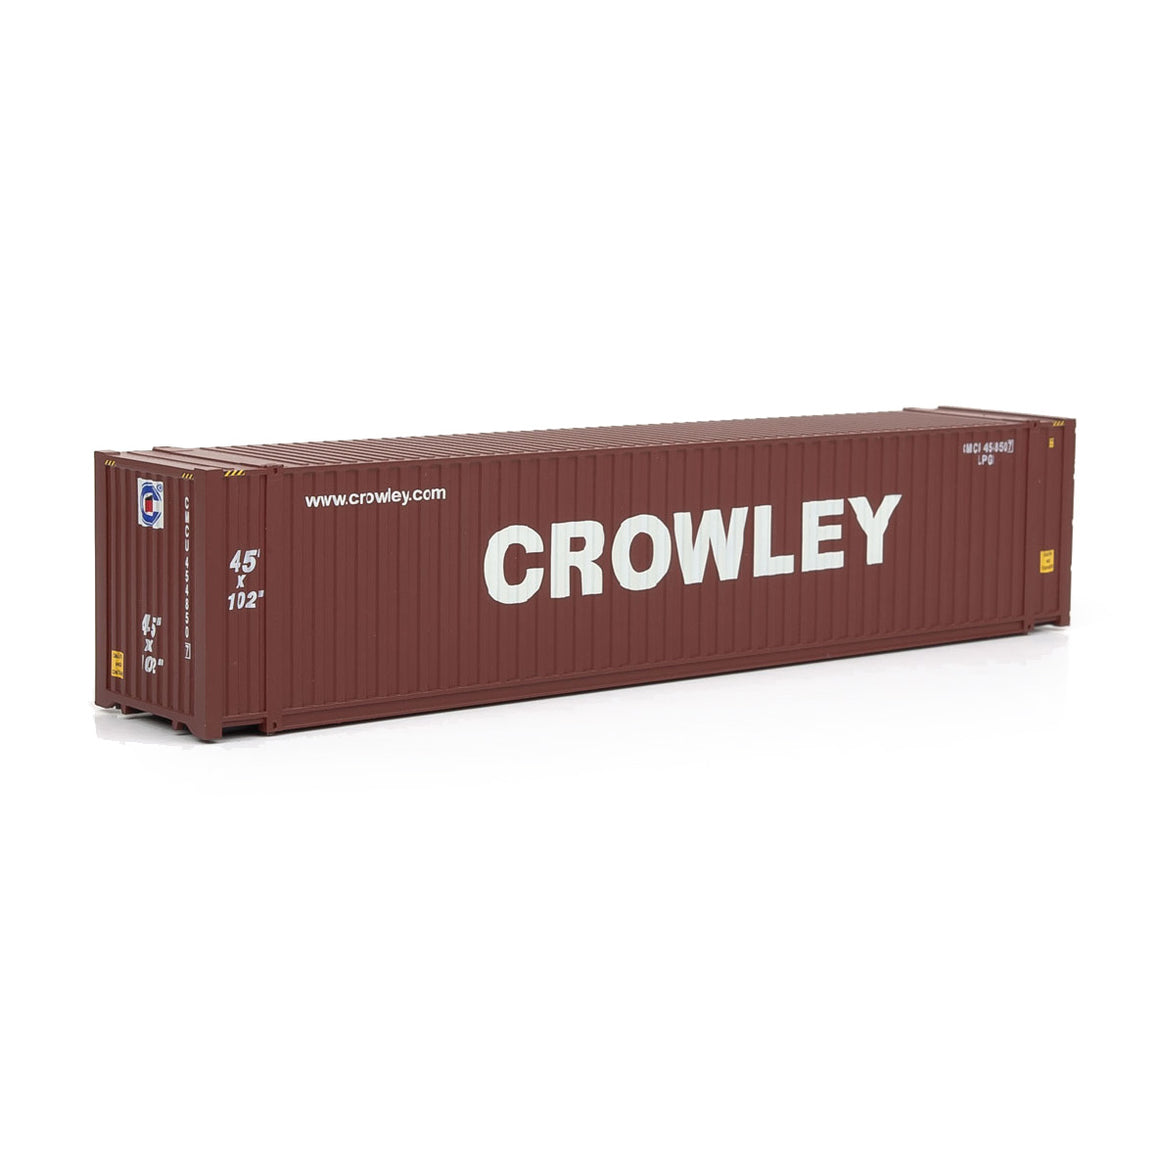 HO Scale: 45' CIMC Container - Crowley